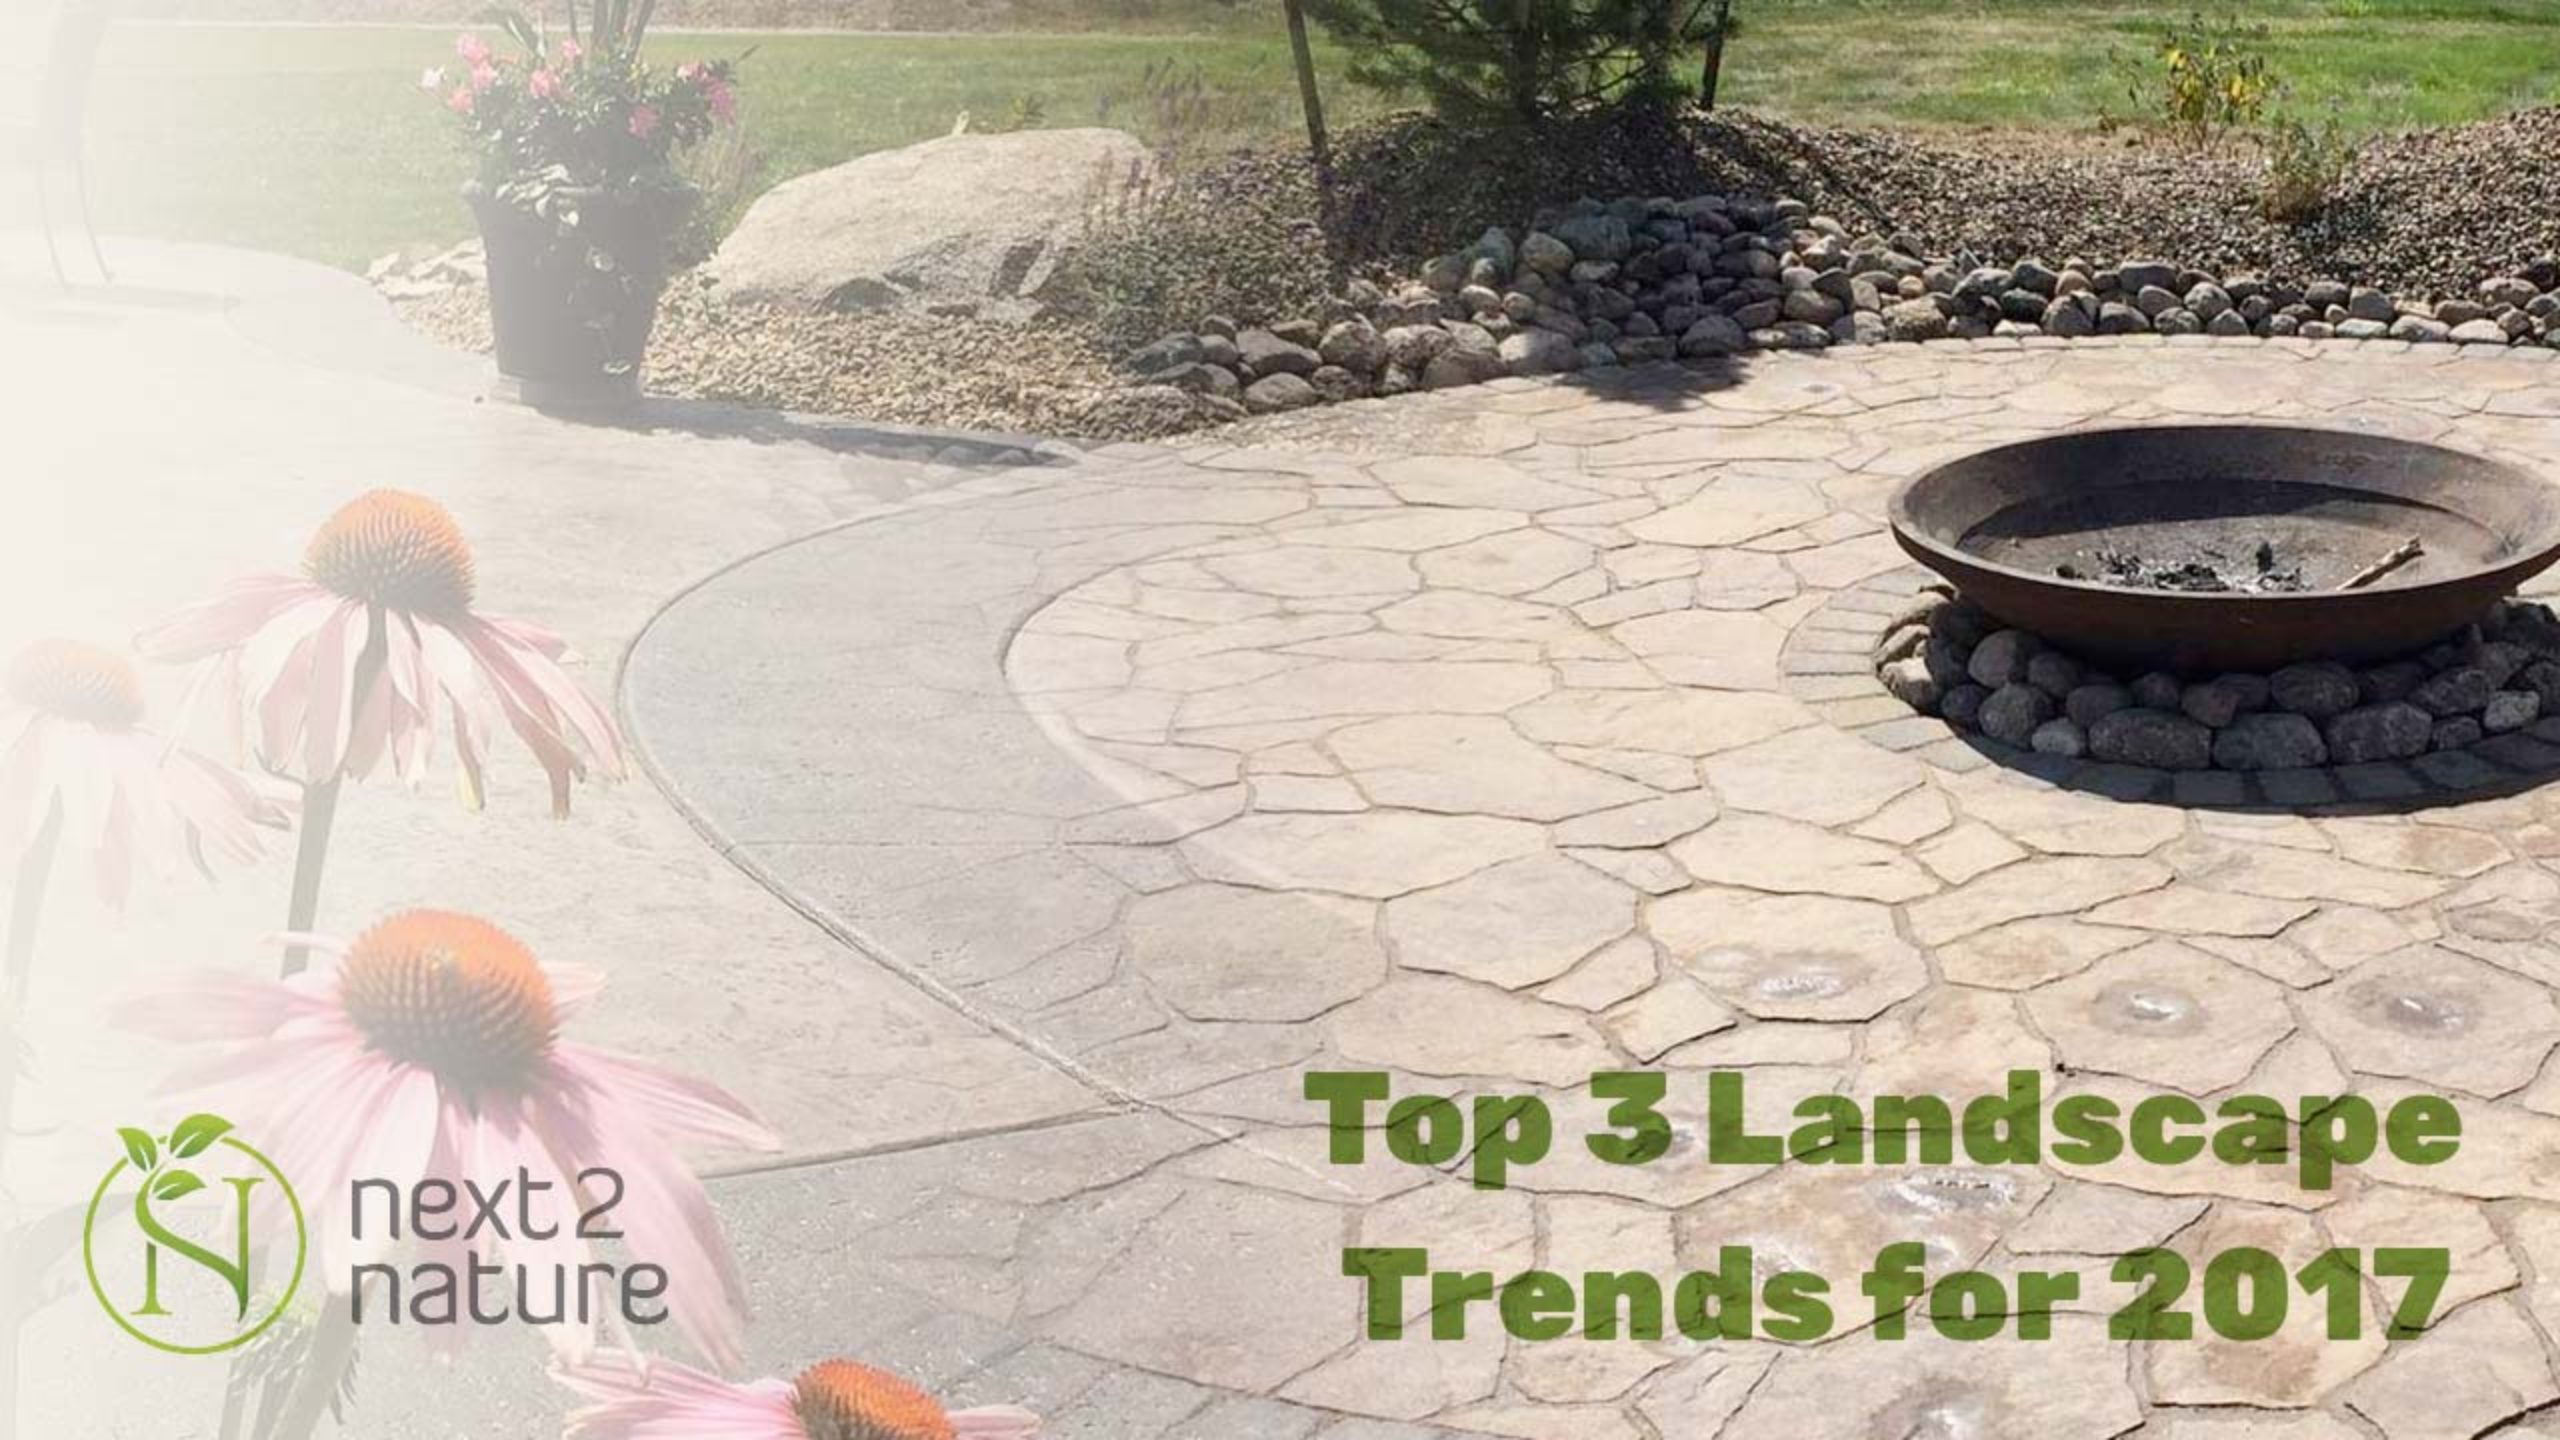 Garden Design Trends 2017 garden design trends 2017: landscaping trends to watch out for in